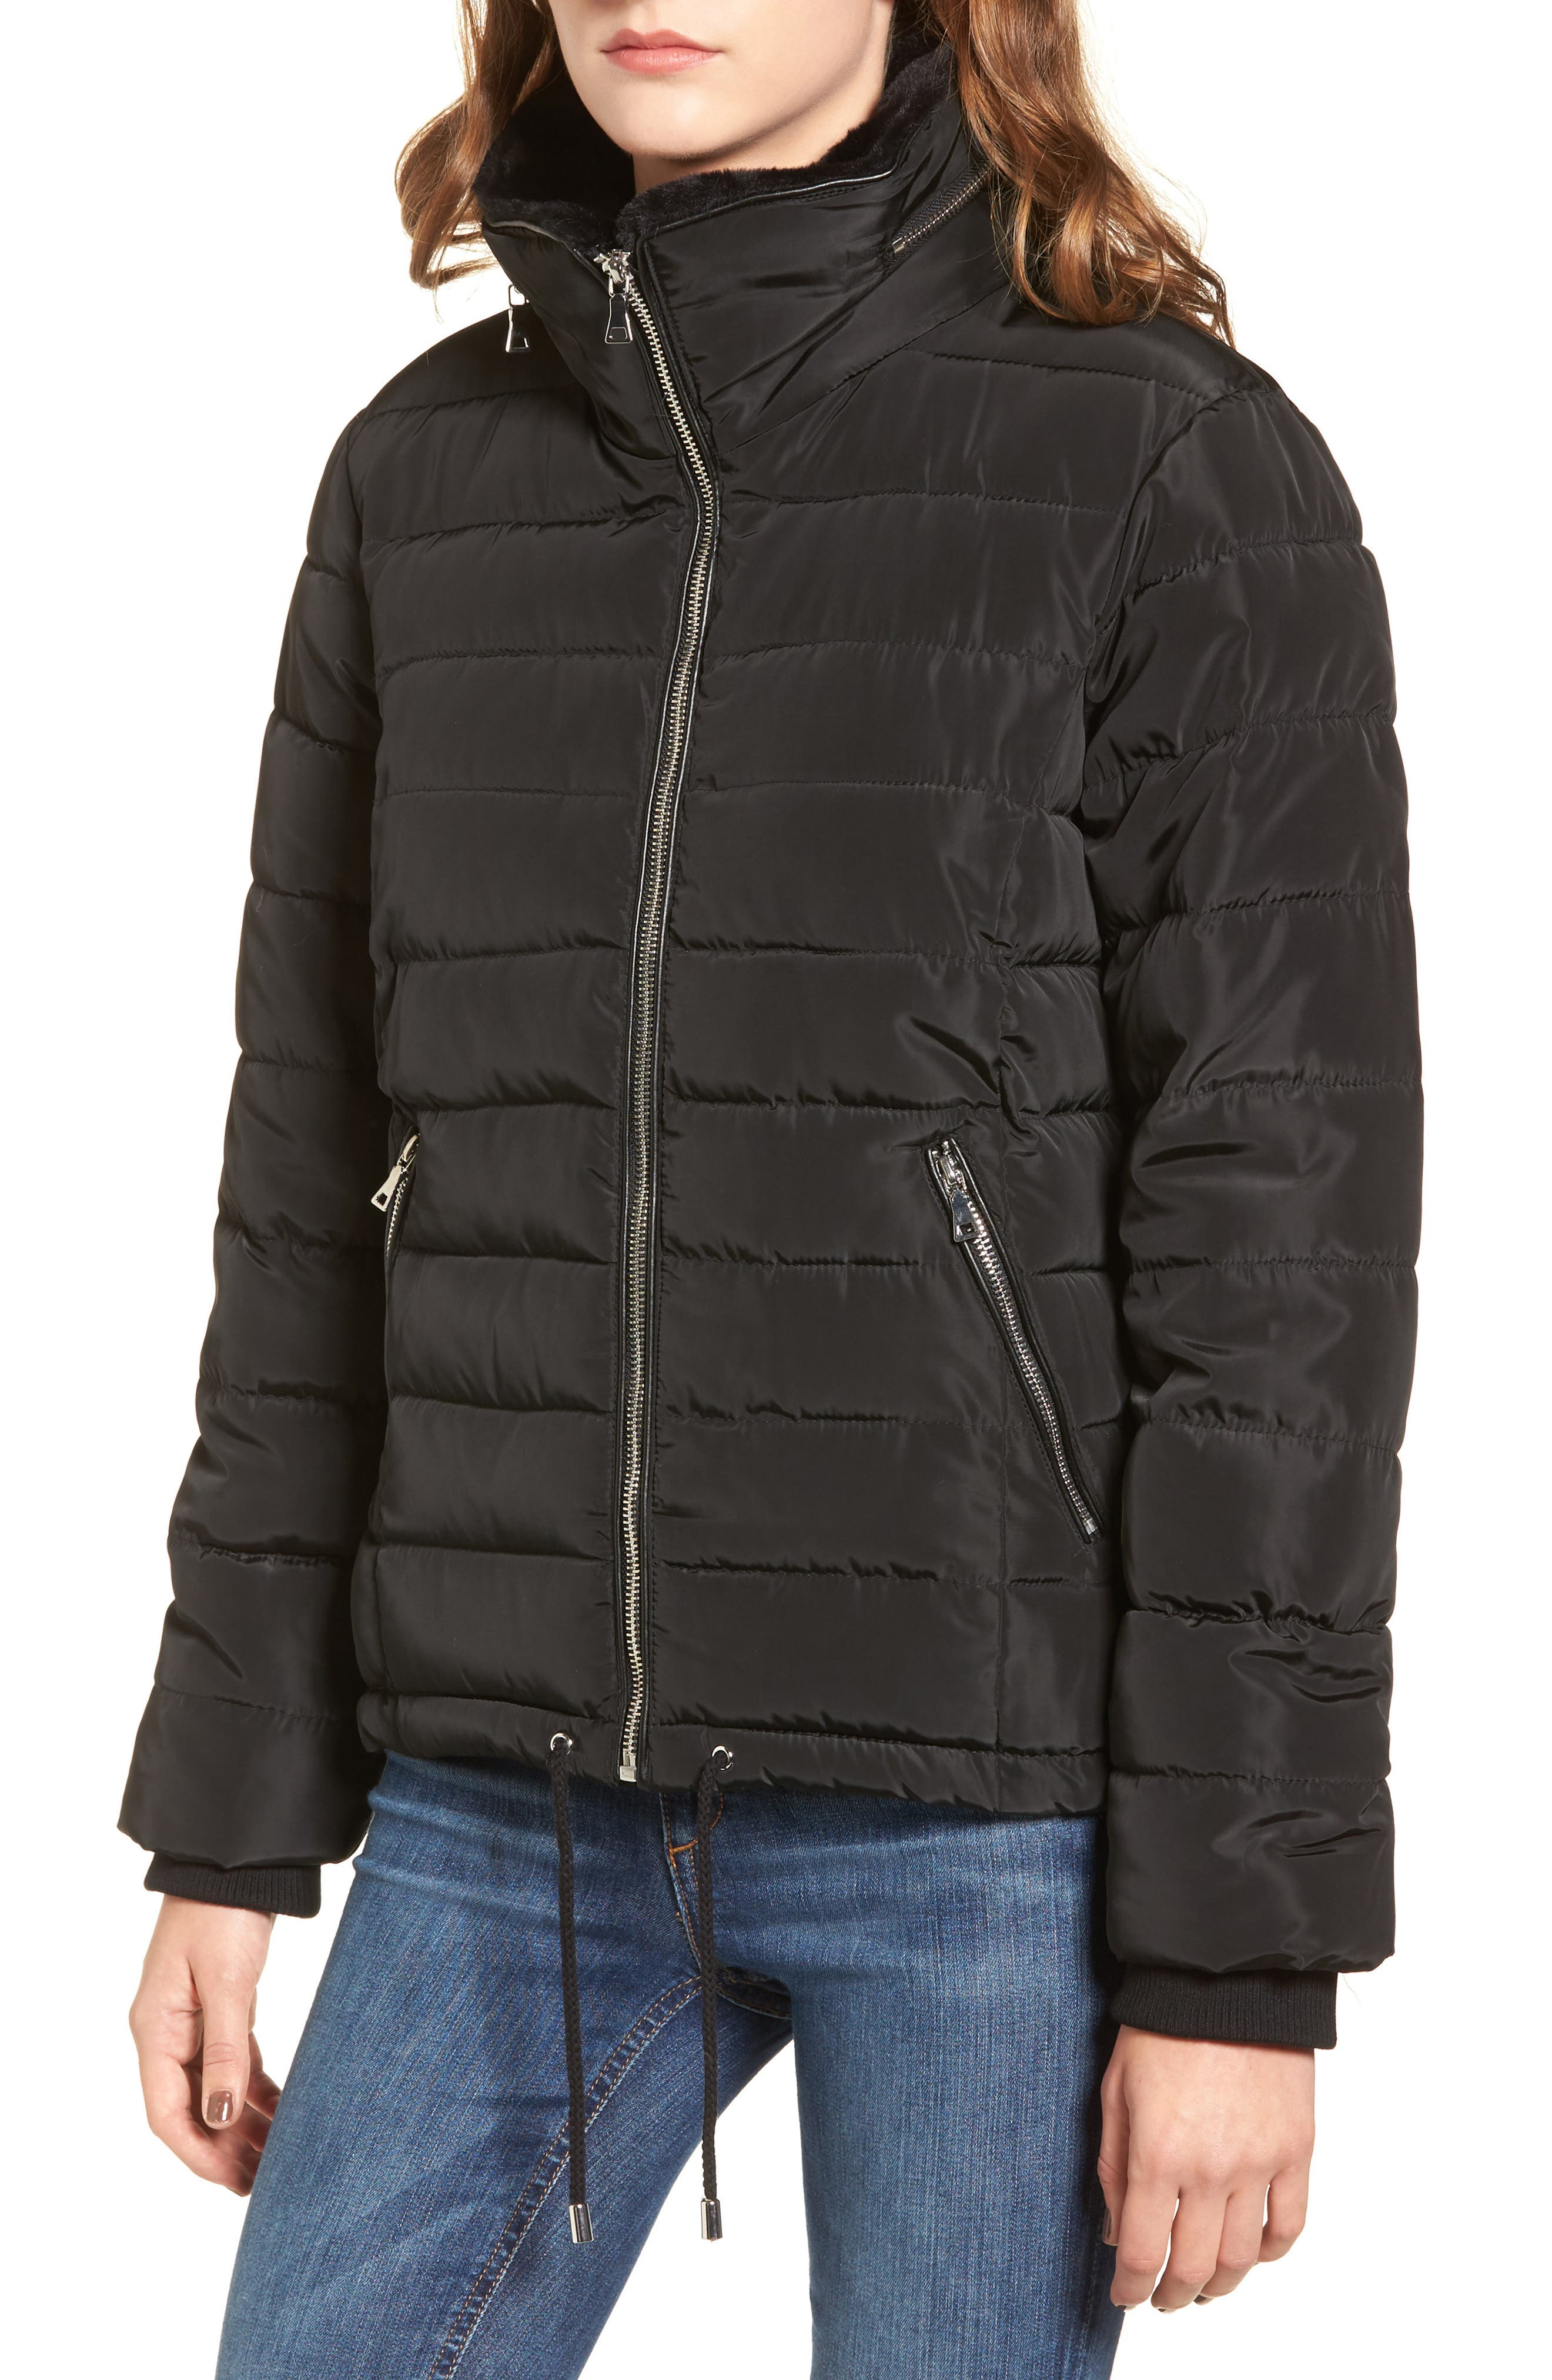 Puffer Jacket with Faux Fur,                             Alternate thumbnail 3, color,                             Black